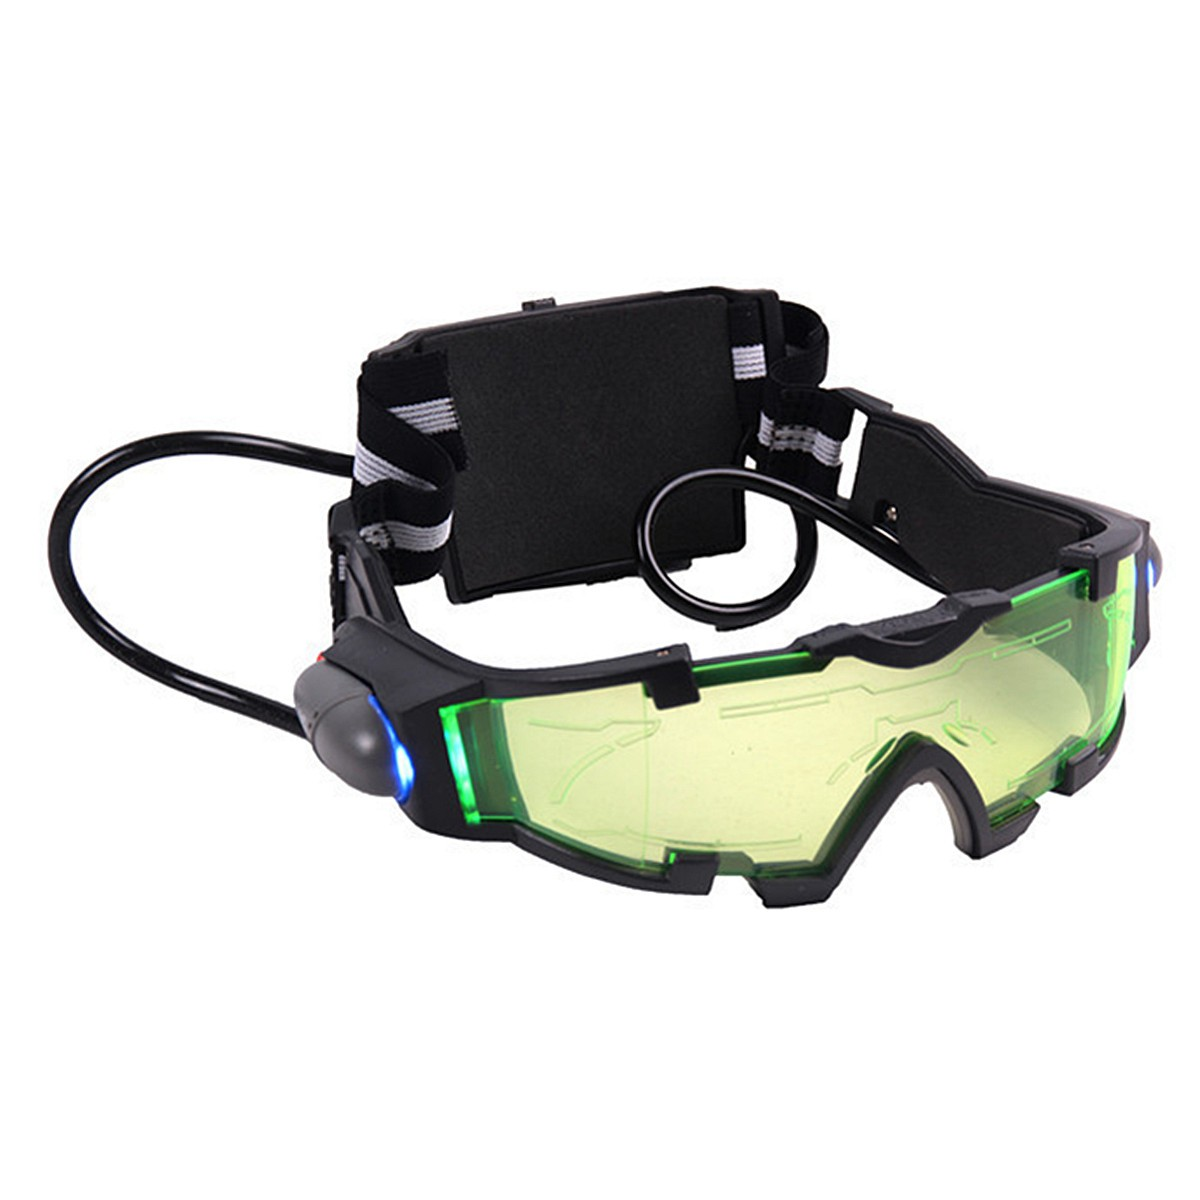 NEW Safurance Adjustable ElasticMilitary Night Vision Goggles Glasses Security Eyeshield Workplace Safety Eye Protection chernika одежда